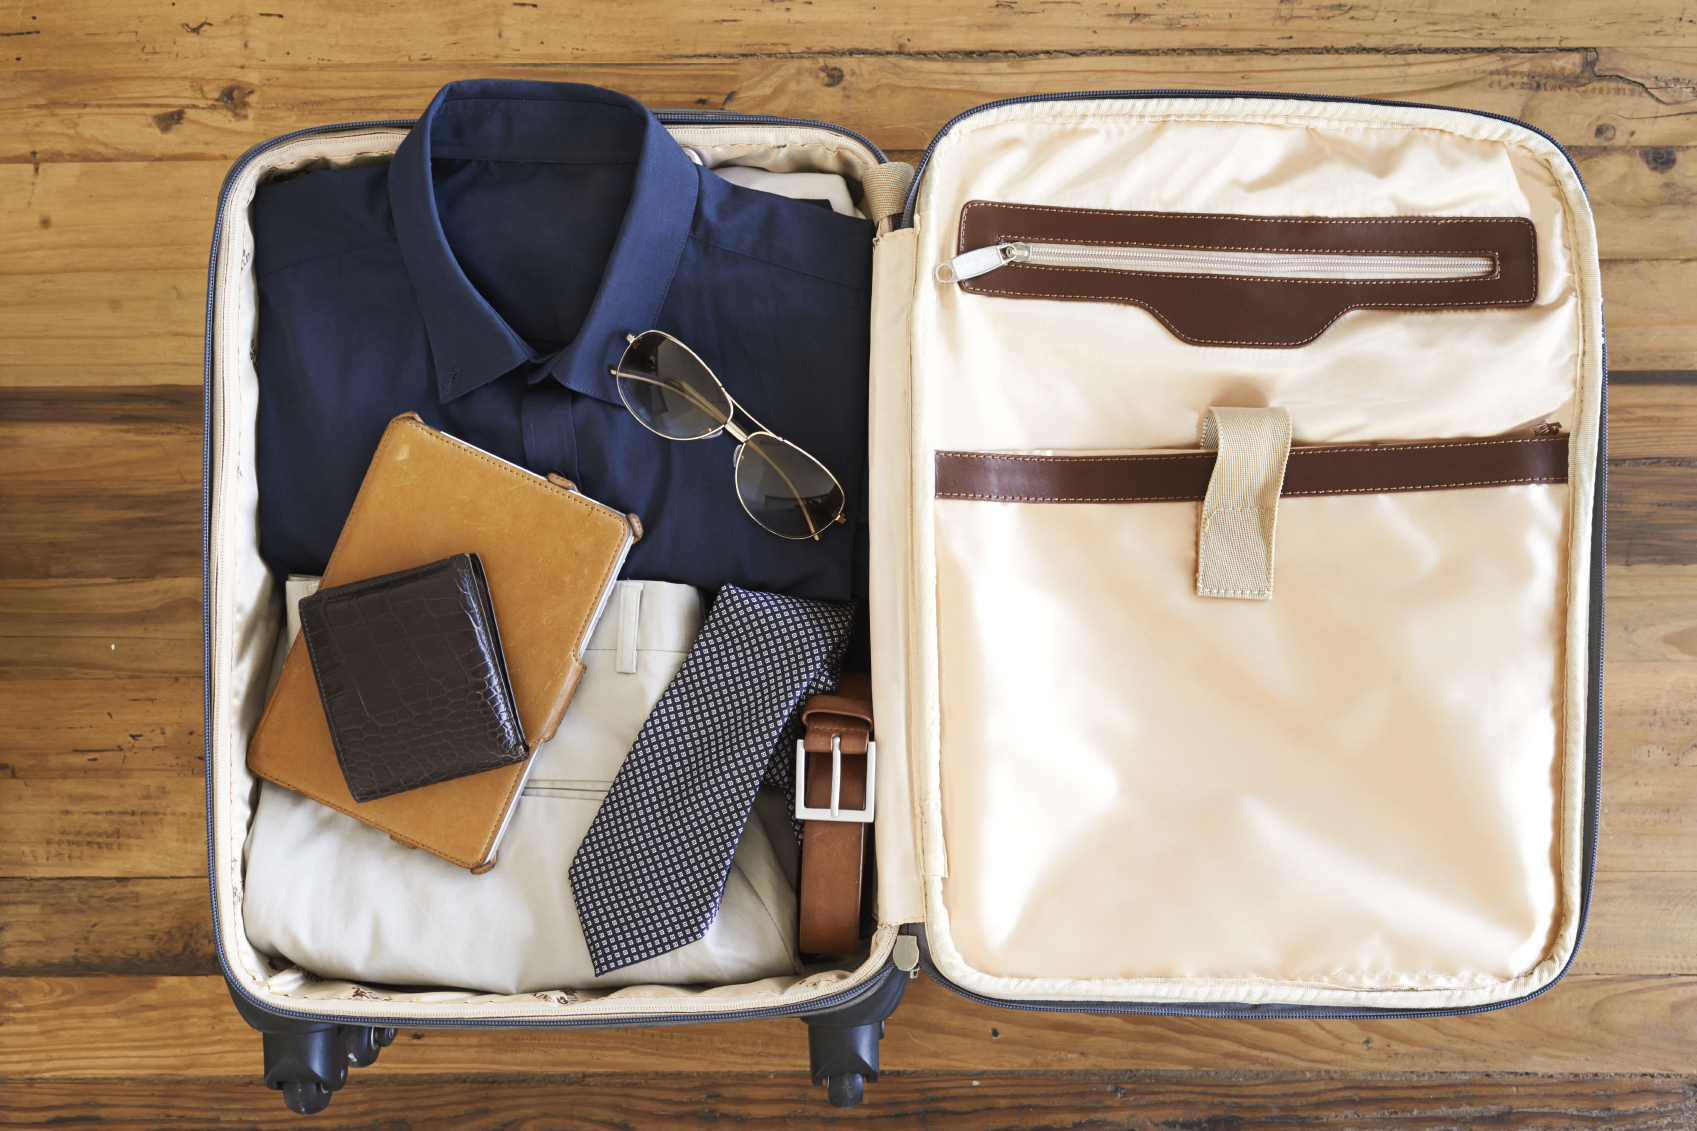 Travelling: Did You Forget Anything? [Infographic]